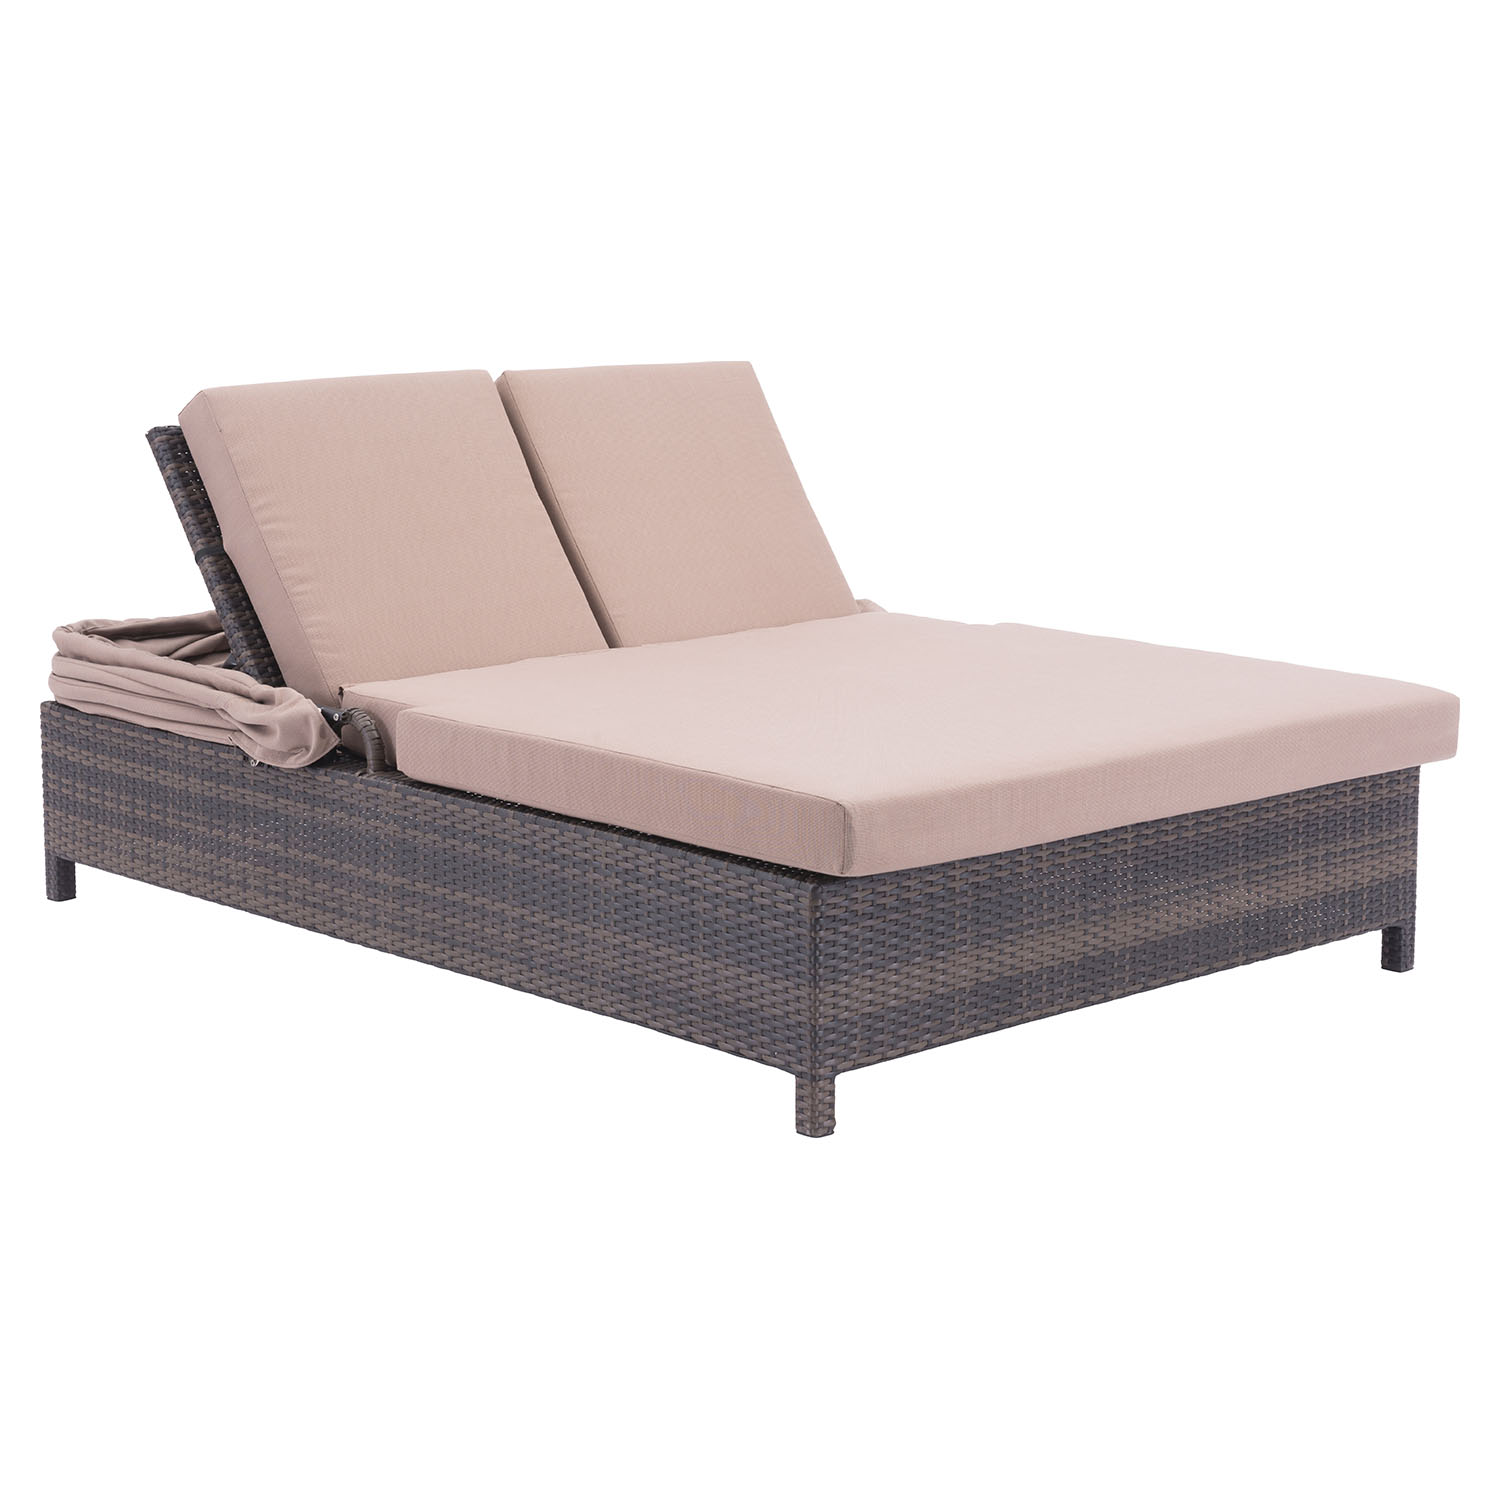 siesta key double chaise lounge brown and beige dcg stores. Black Bedroom Furniture Sets. Home Design Ideas